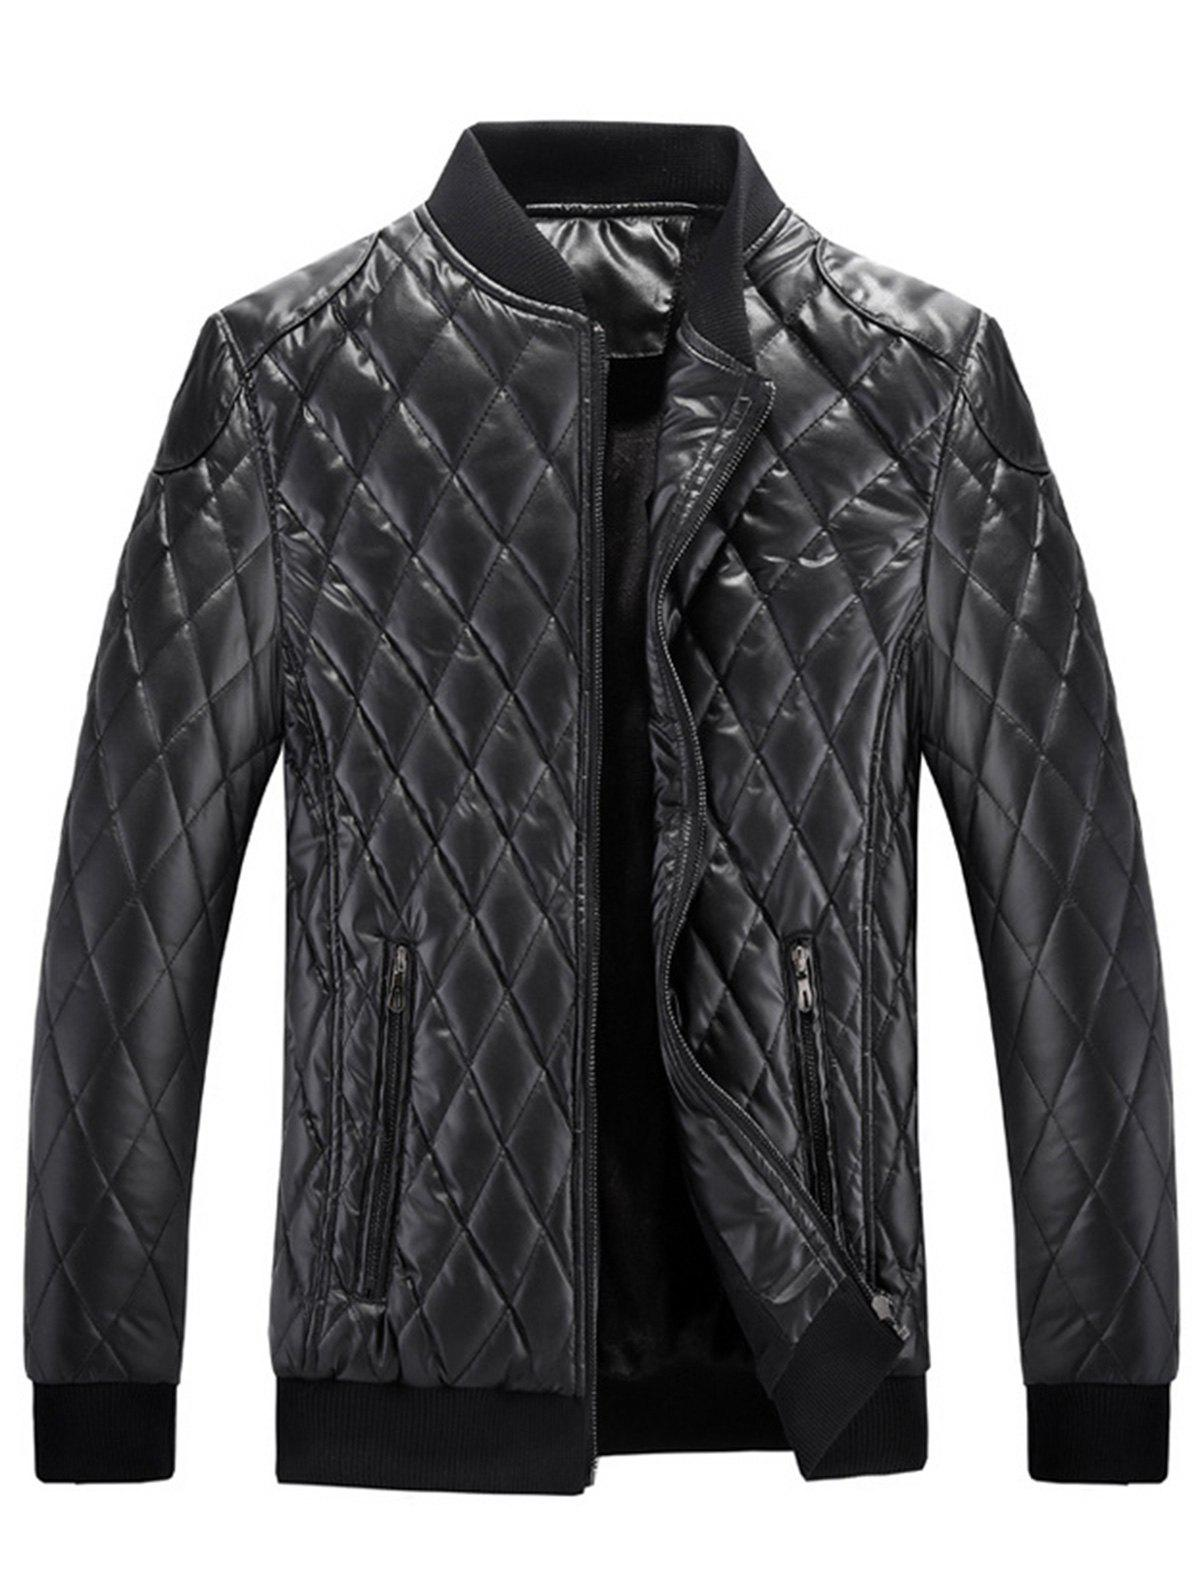 New Zip Up Checkered Faux Leather Jacket